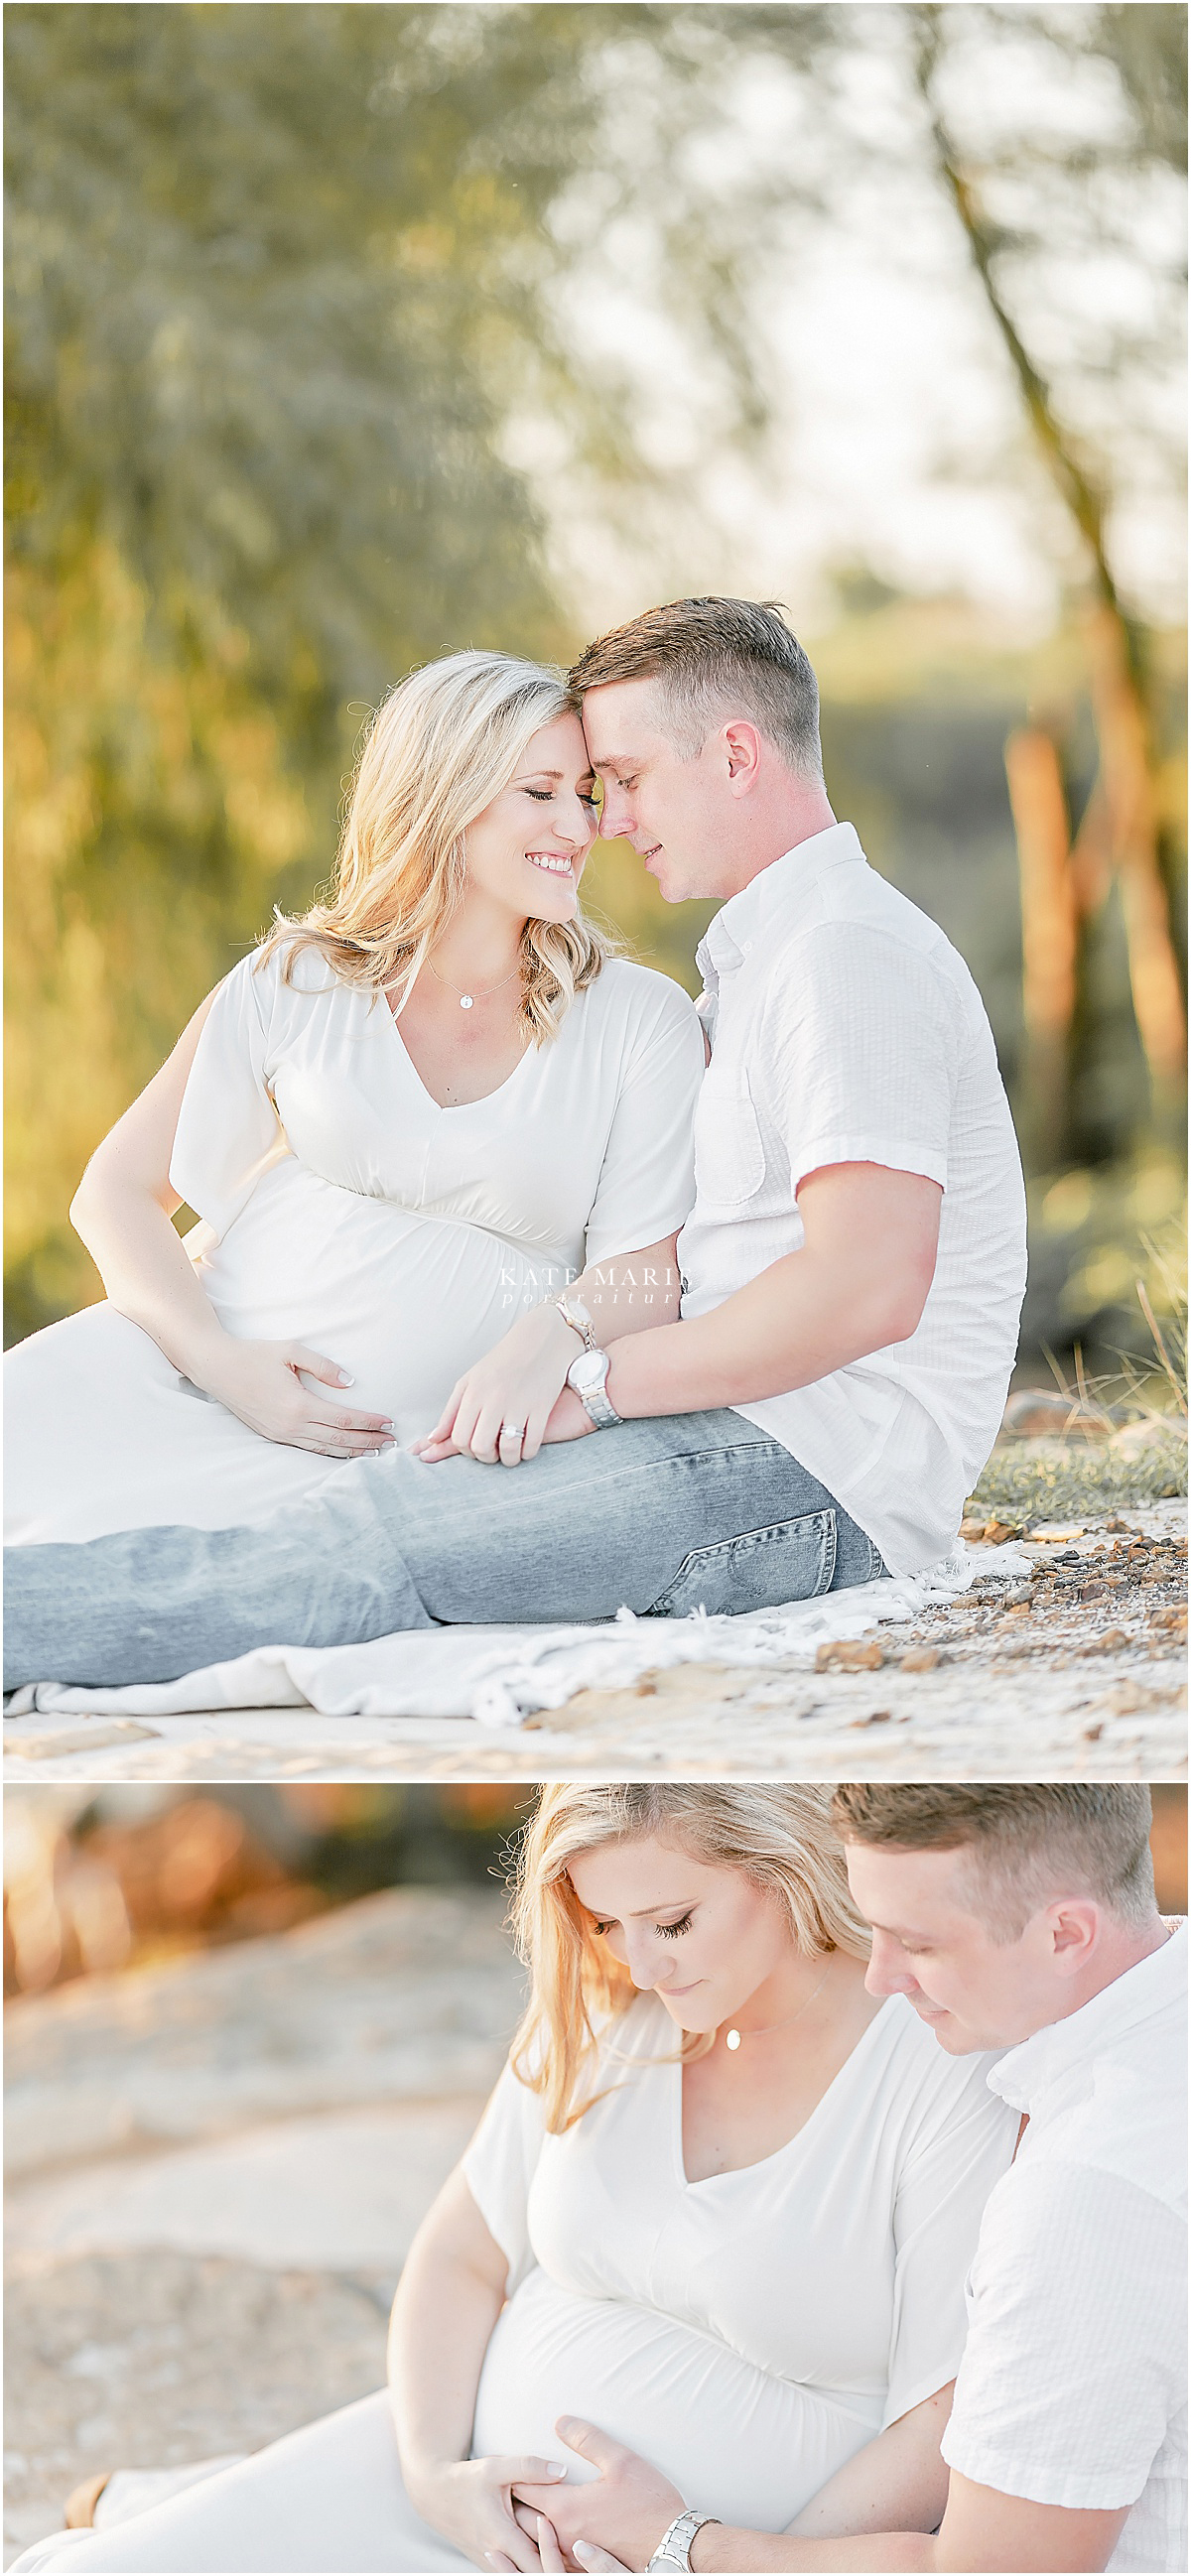 Dallas_Motherhood_Photographer_Flower_Mound_Photographer_Jen Will_11.jpg